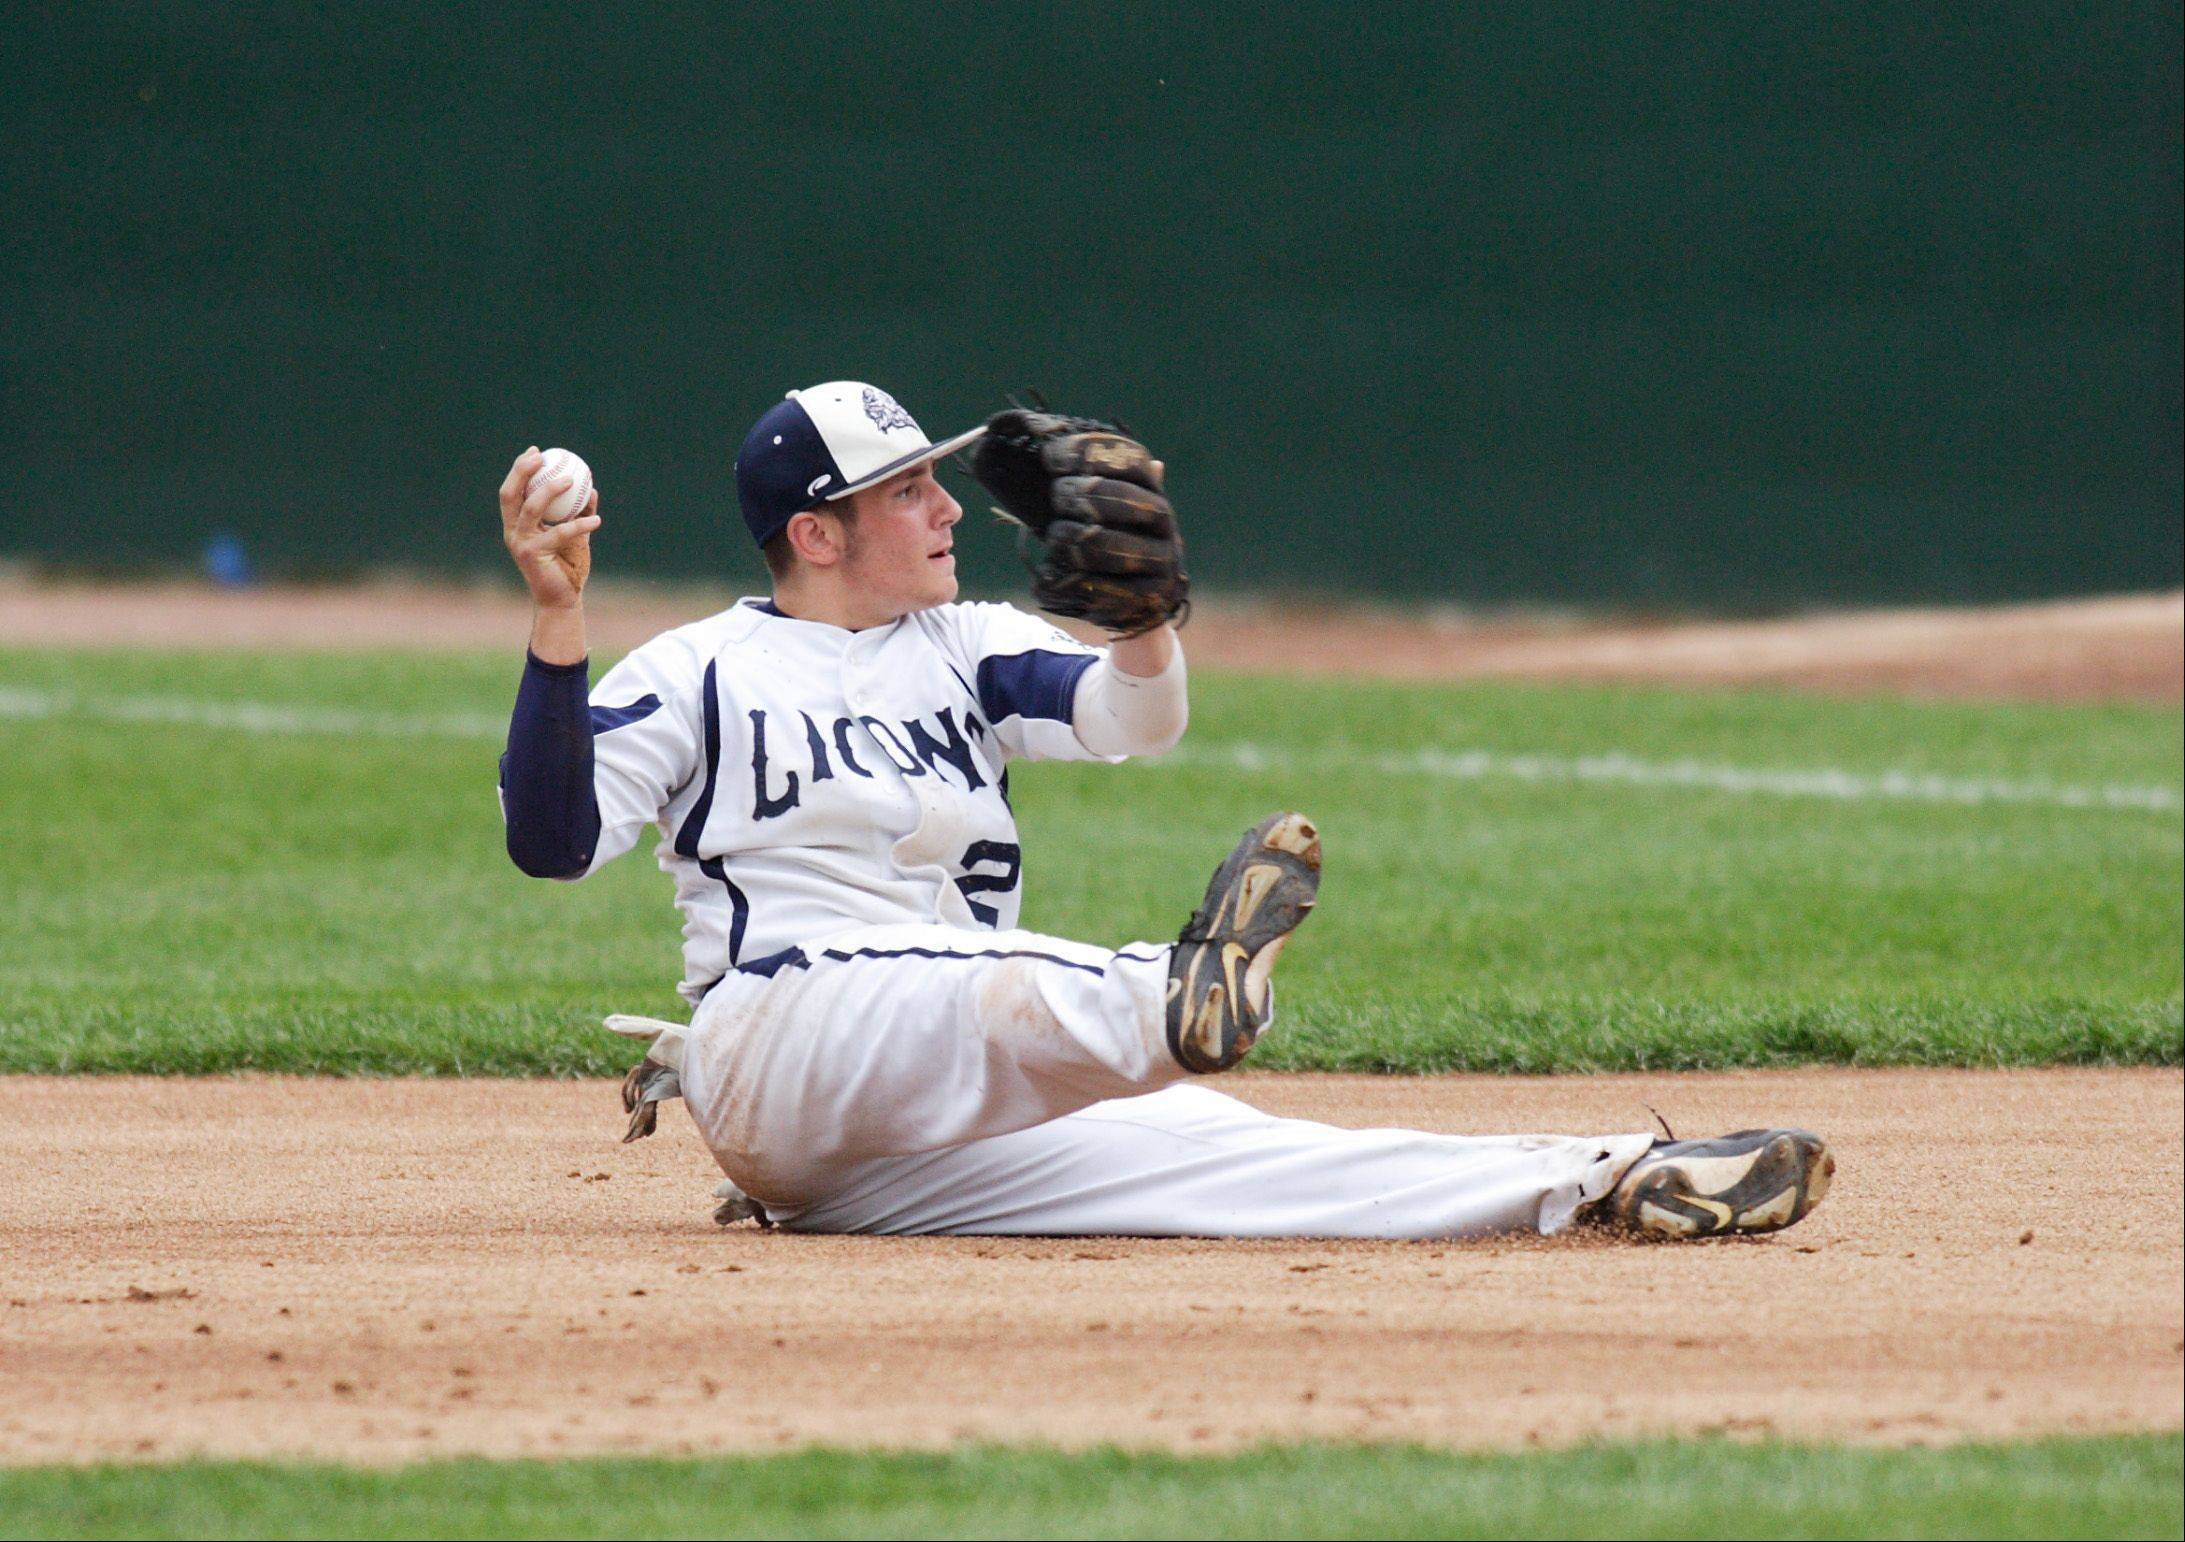 After making diving stop, Lisle's Cliff Krause makes a throw to first for an out in their IHSA state semifinal baseball game against Teutopolis. The Lions defeated the Wooden Shoes 2-1 to advance to Saturday's title game at Dozer Park in Peoria.